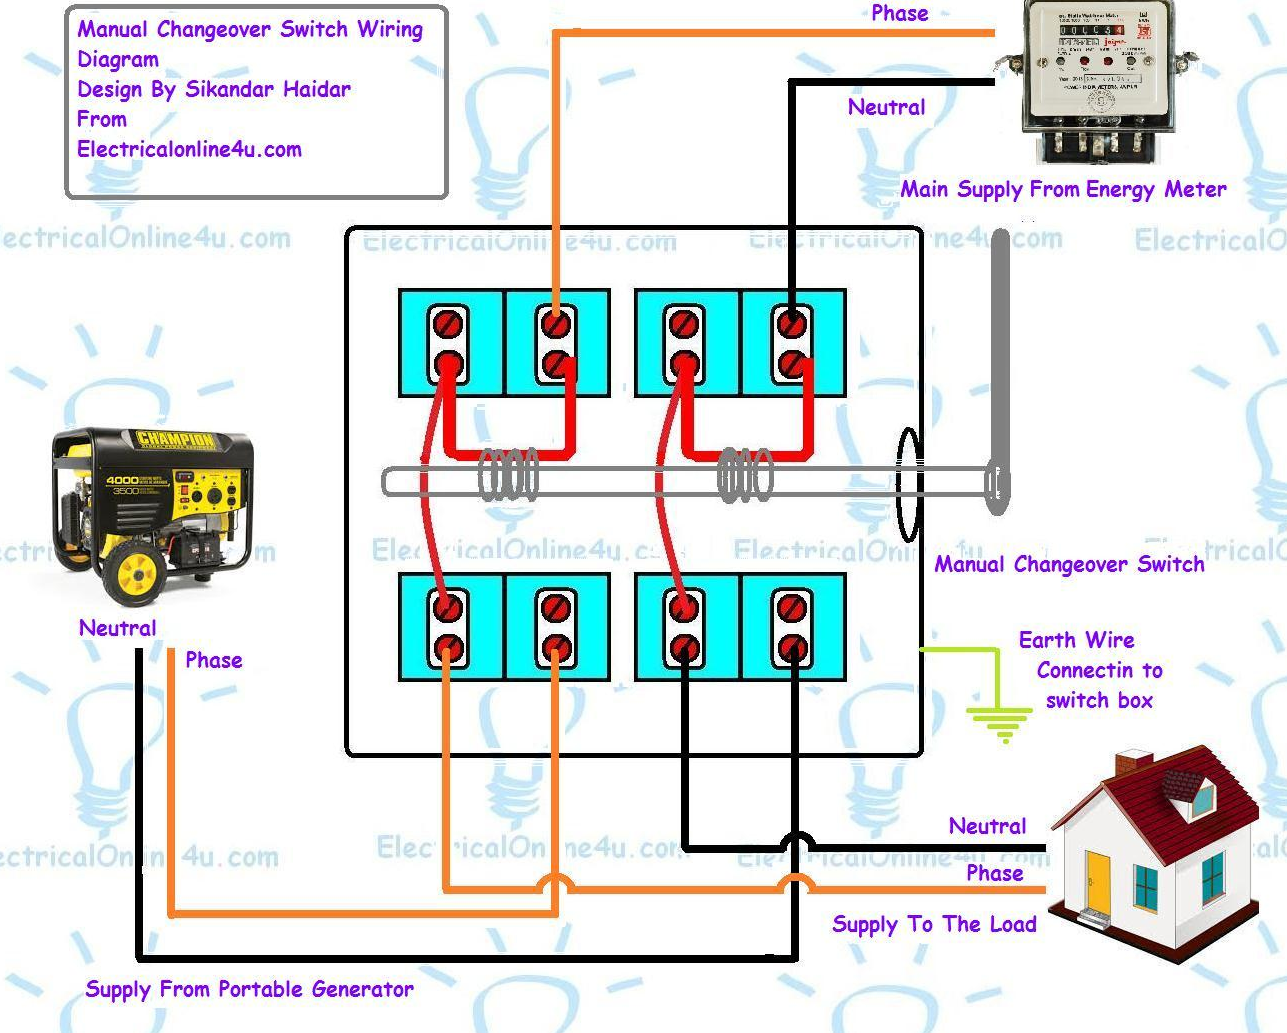 manual%2Bchangeover%2Bswitch%2Bwiring%2Bdiagram single phase motor wiring with contactor diagram electrical electrical contactor wiring diagram at bayanpartner.co